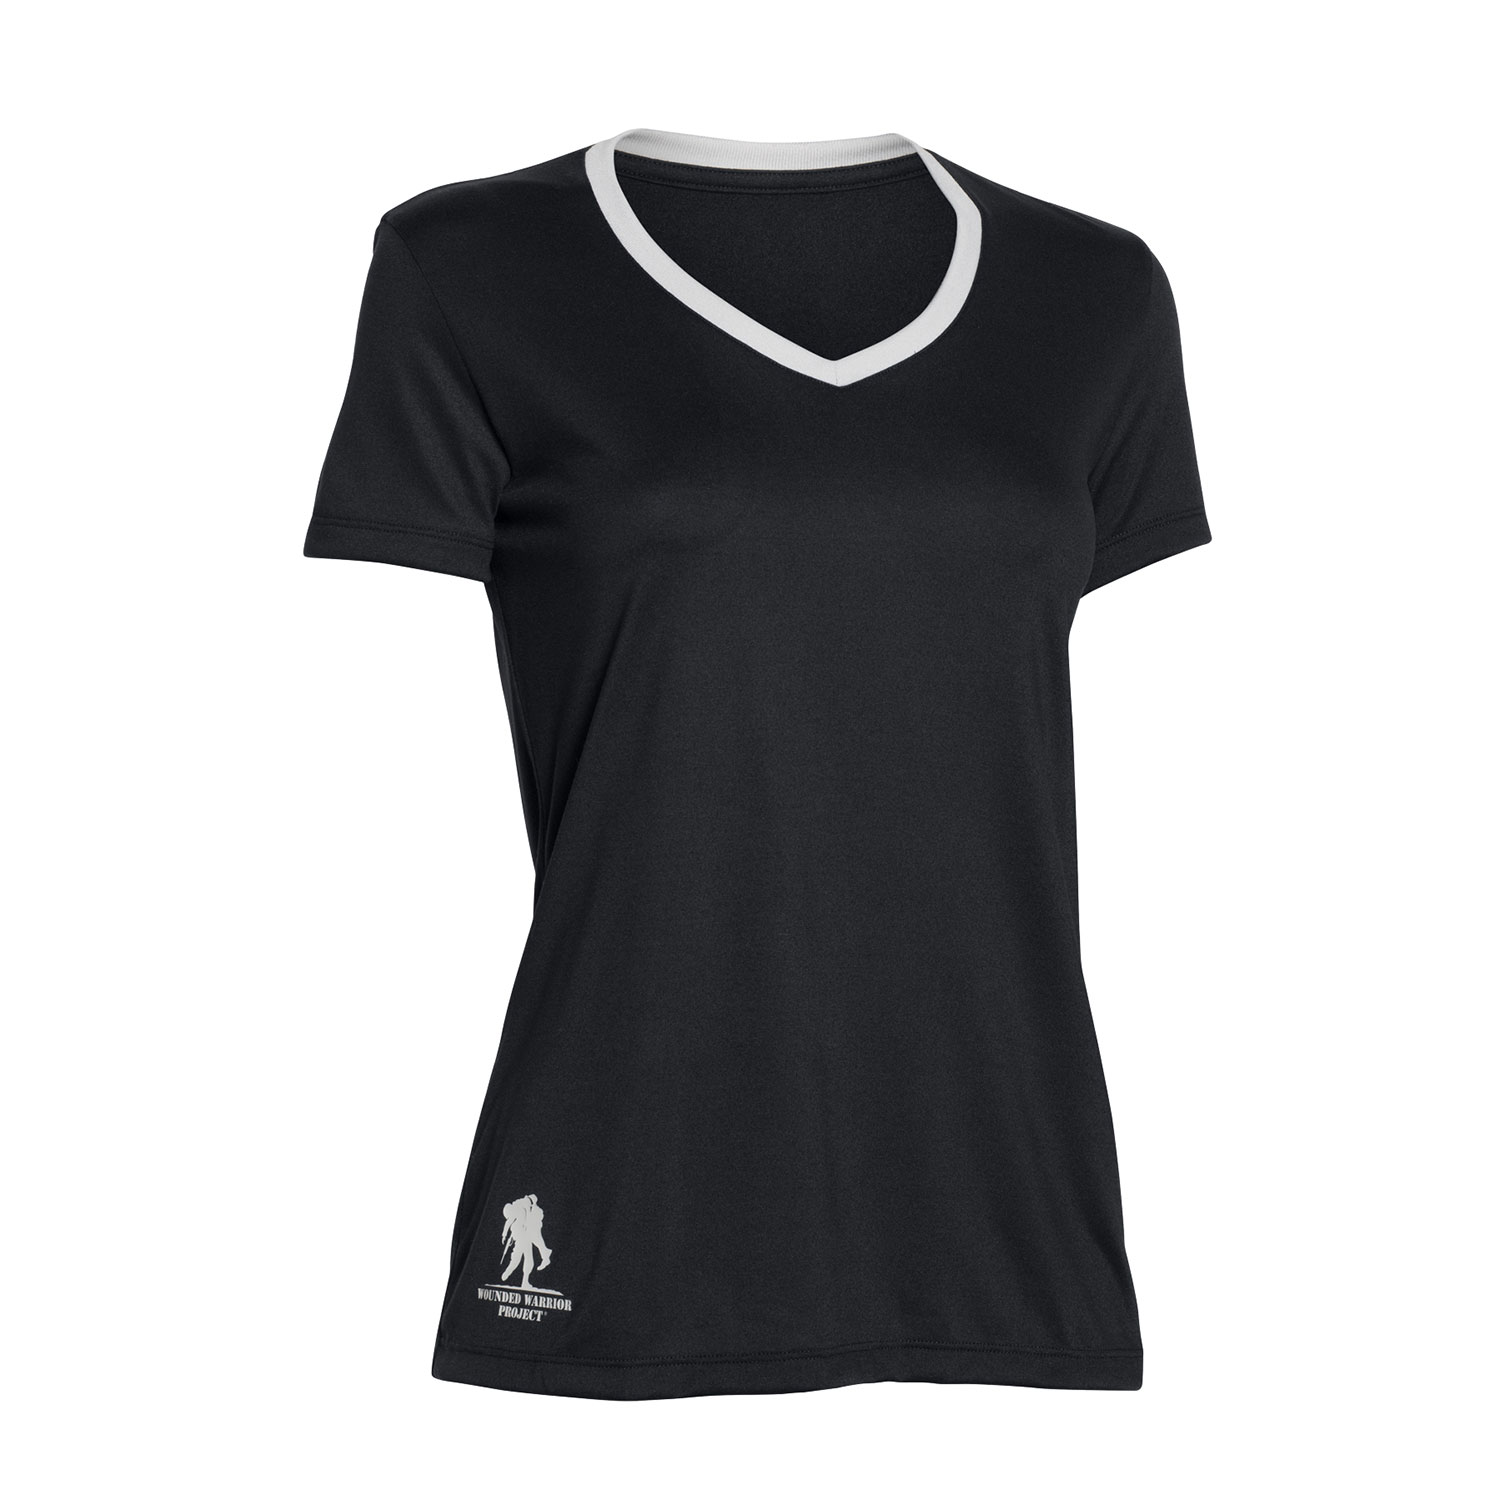 Under Armour Women's UA Tech Freedom Short Sleeve T-Shirt